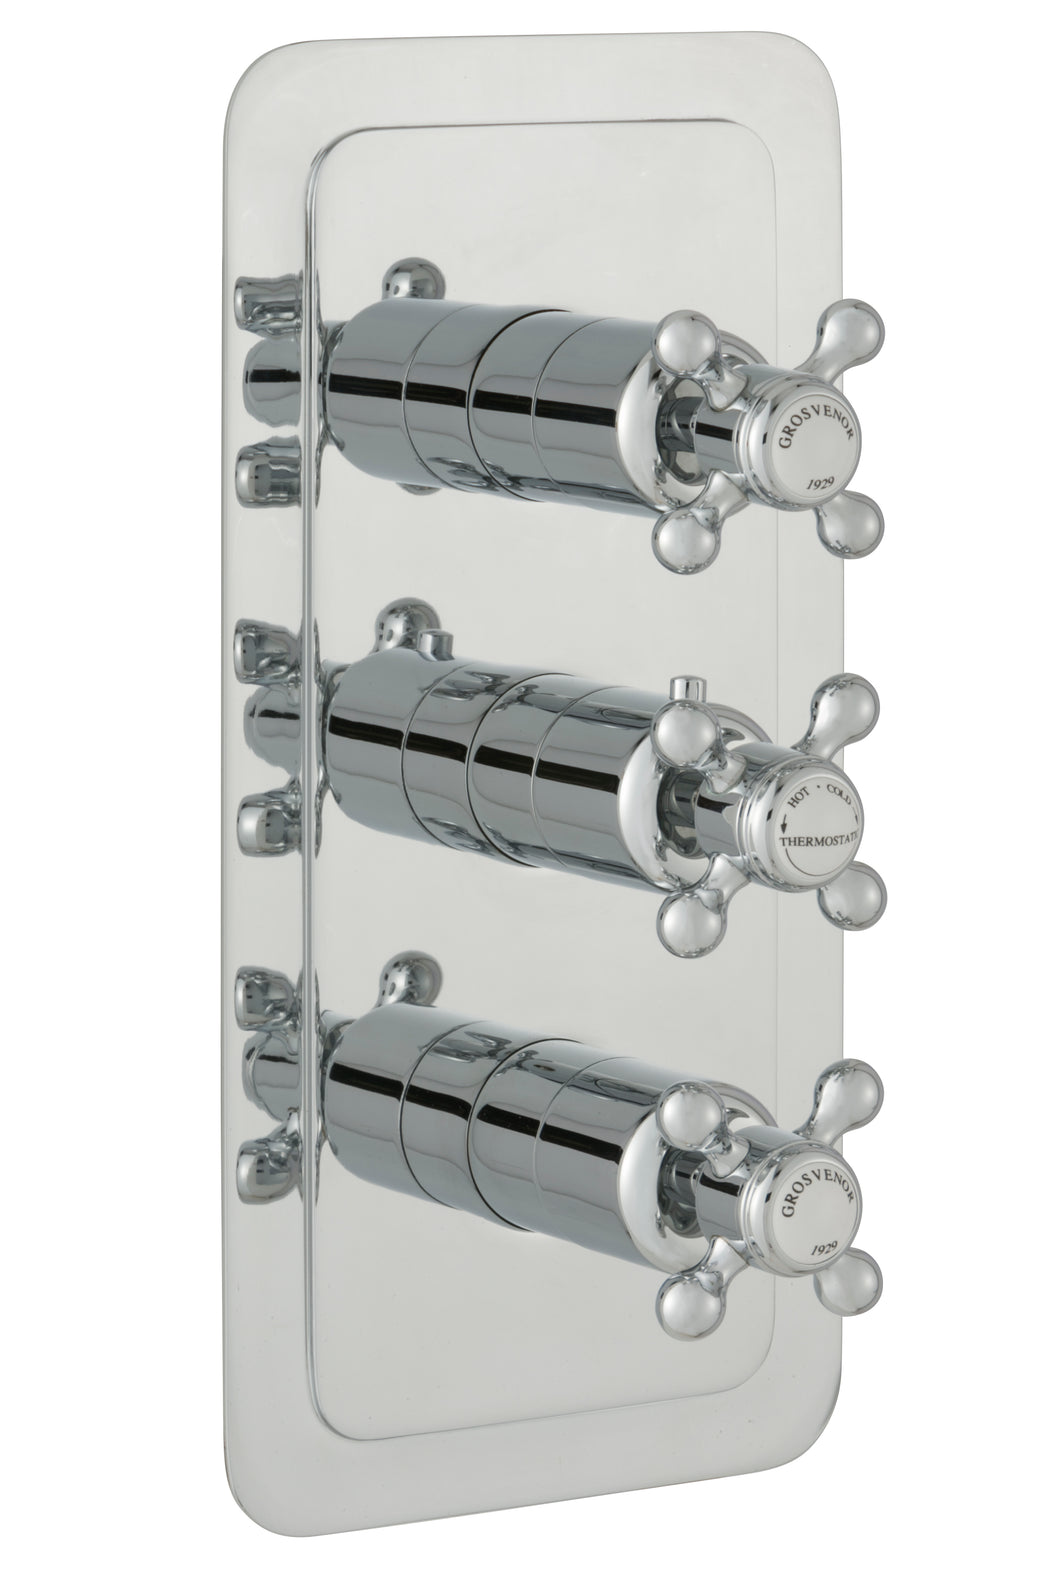 Chester Crosshead Three Outlet Concealed Thermostatic Shower Valve Vertical - Nickel